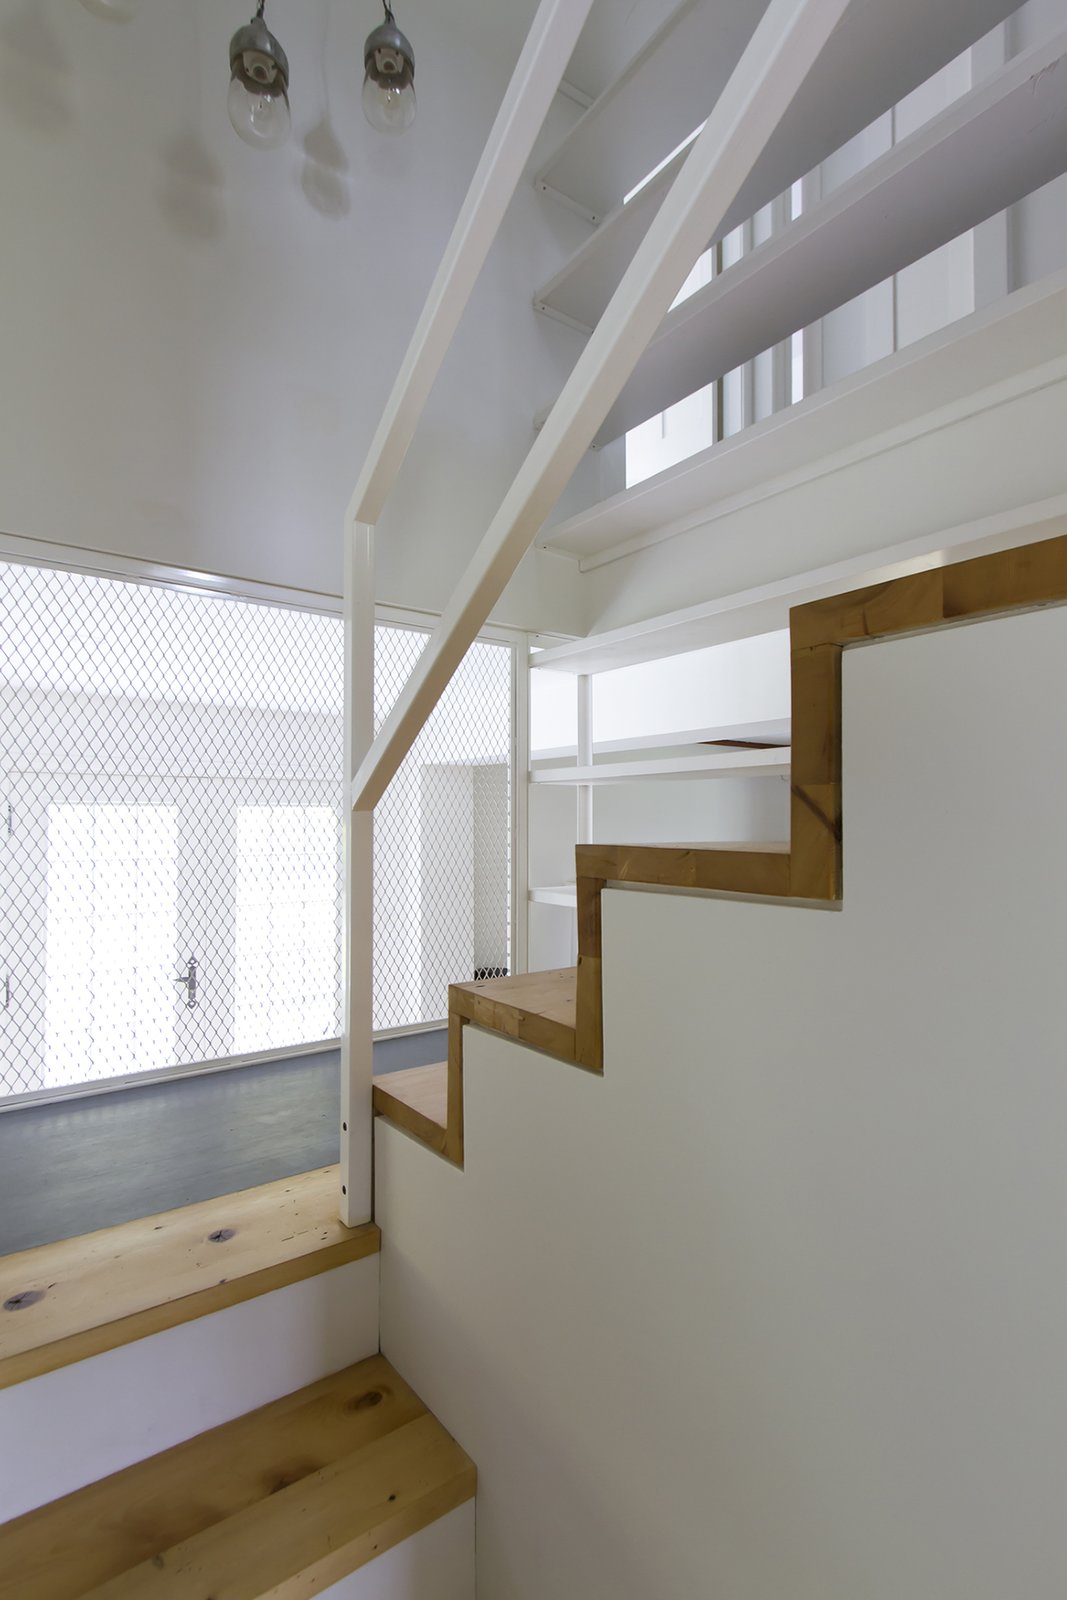 The staircase was built from the wooden beams that belonged to the structure of the ancestral floor. The stairs also integrate a library that goes from the bottom of the steps to the ceiling. Tagged: Staircase, Metal Tread, Wood Tread, and Metal Railing.  L'Eau Vive by FÉLIX & Co.